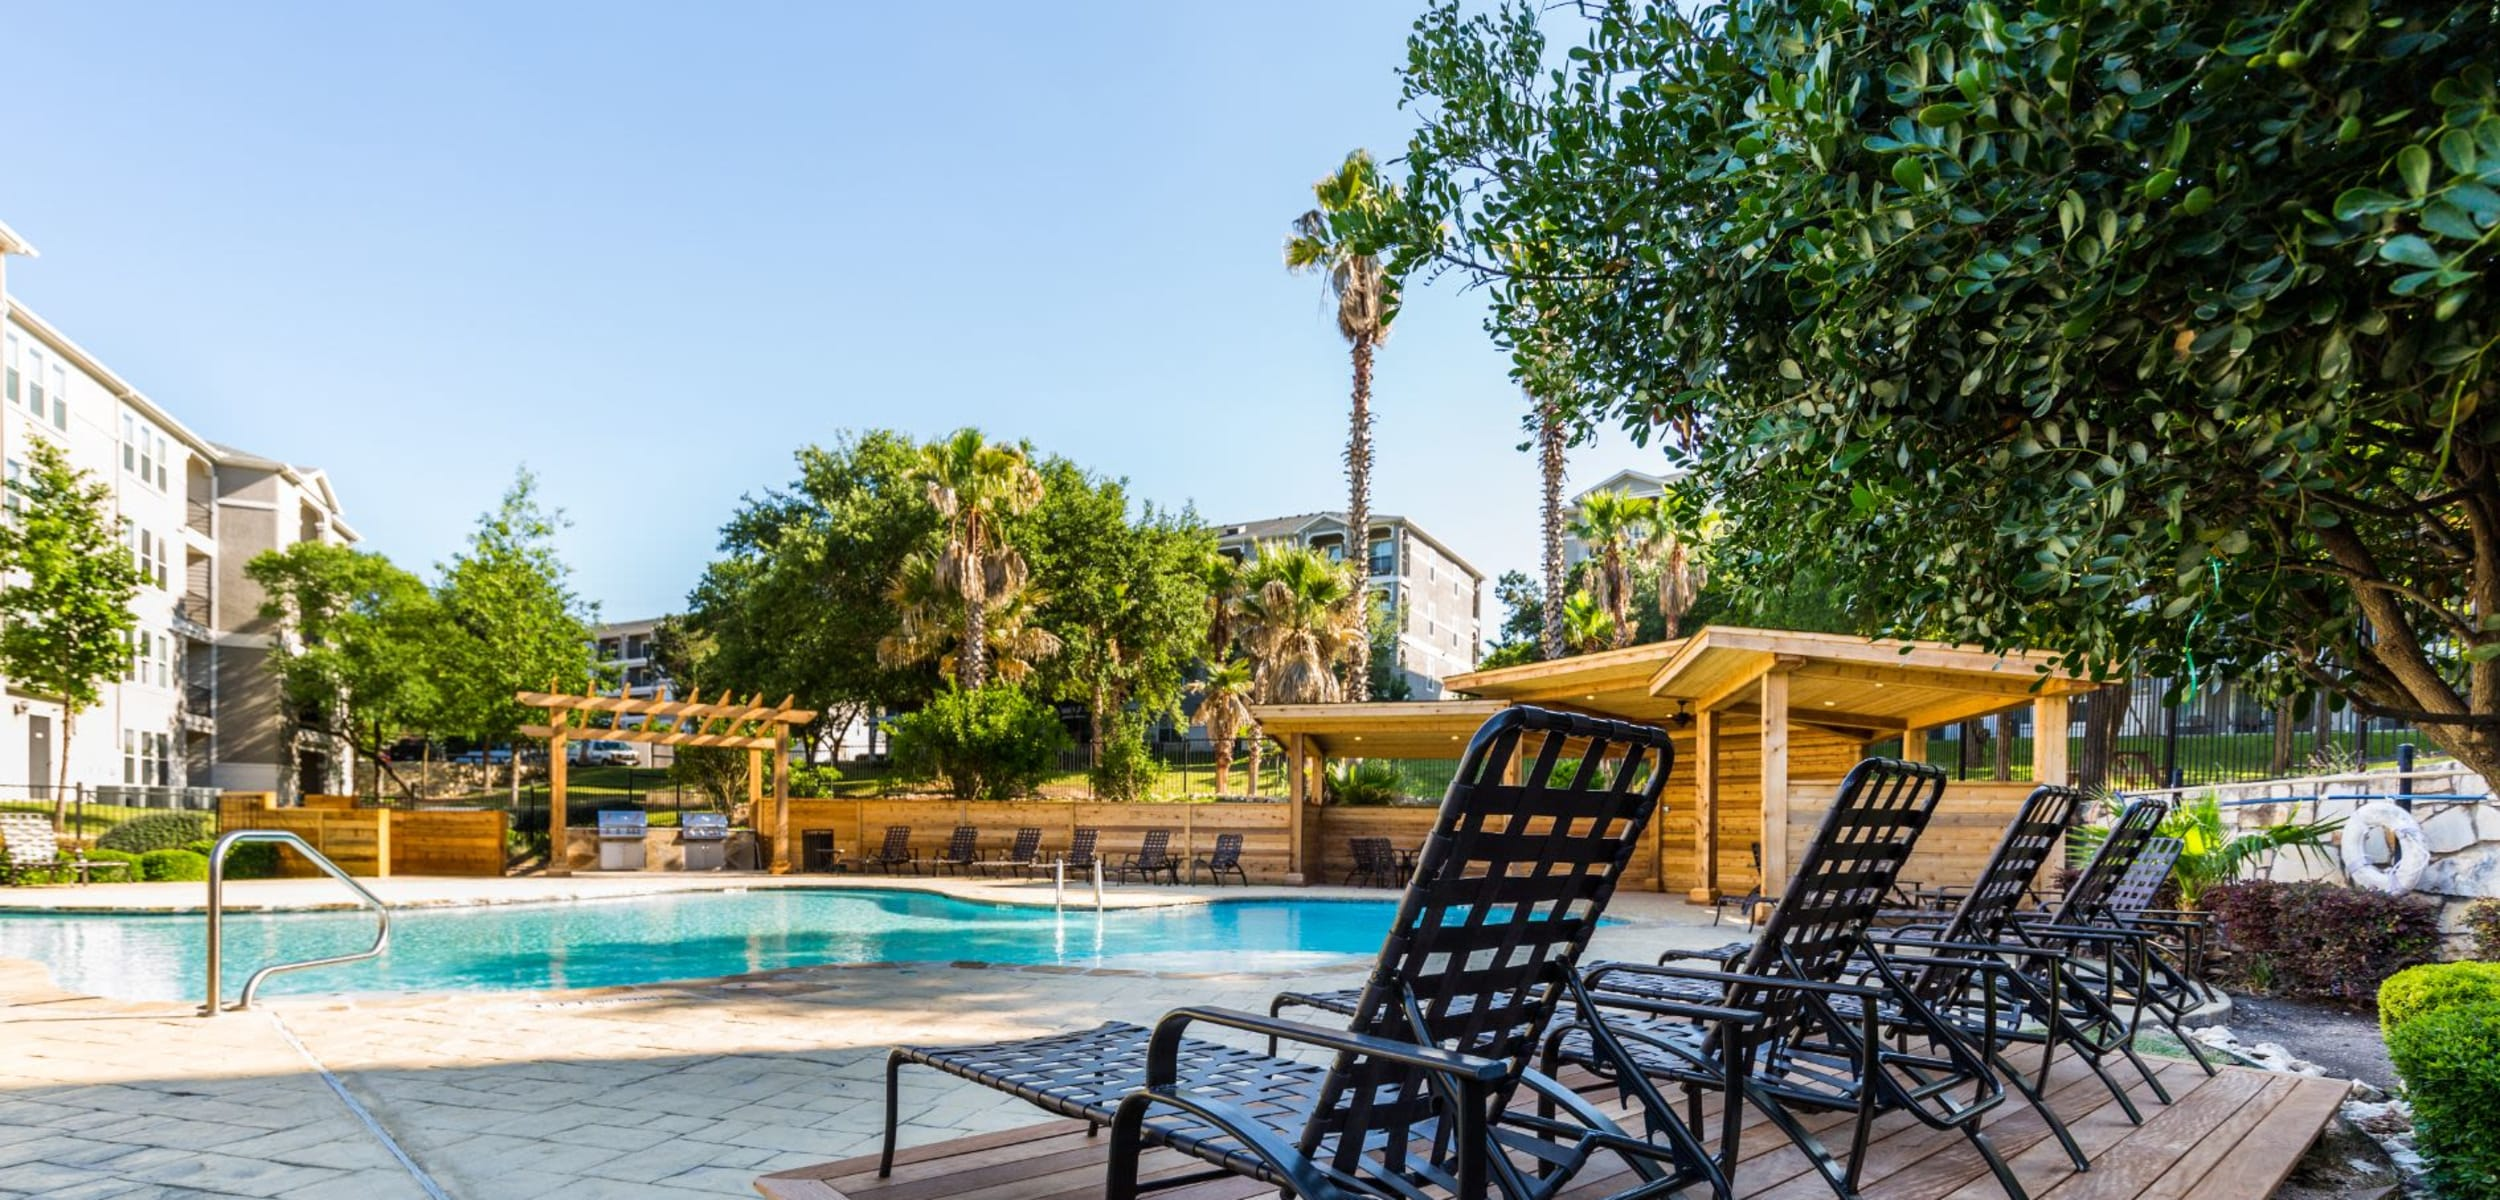 Swimming pool with sun chairs at Marquis at Crown Ridge in San Antonio, Texas